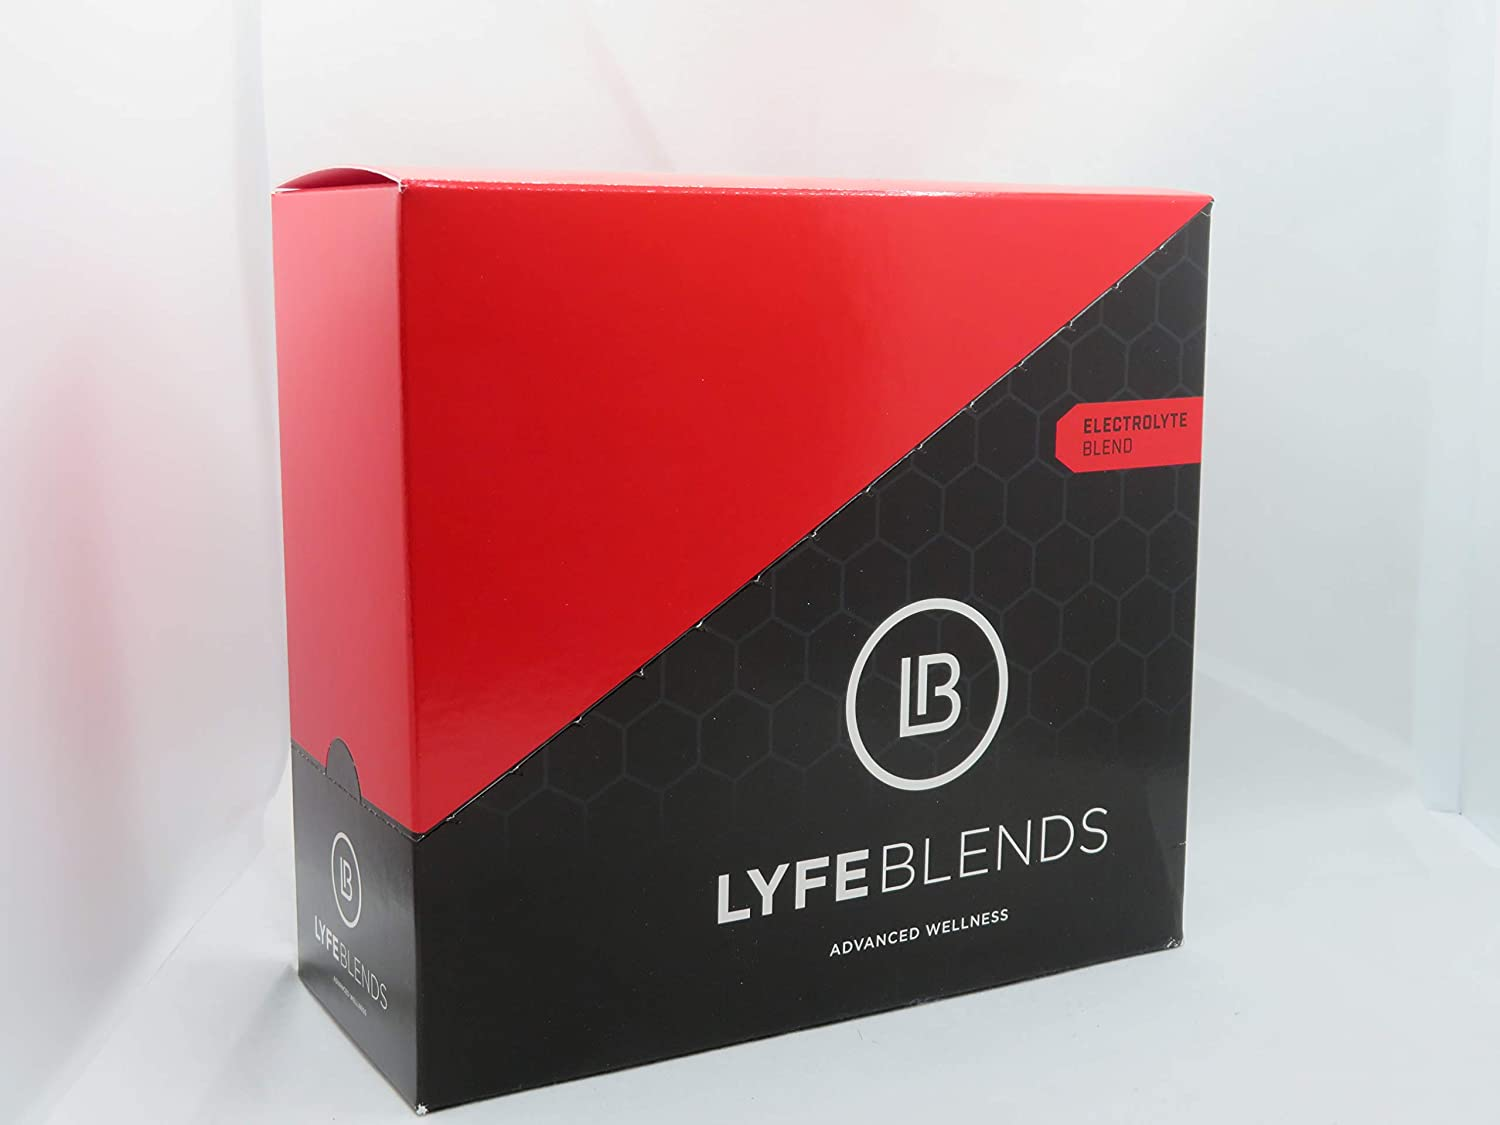 LYFE BLENDS Performance Peanut Butter, Cinnamon Swirl Flavor; Sourced from Organic Foods, Non GMO, Gluten Free, Vegan w/ Electrolytes, Sodium, Calcium, Potassium(Recovery Blend, 6 Pack)